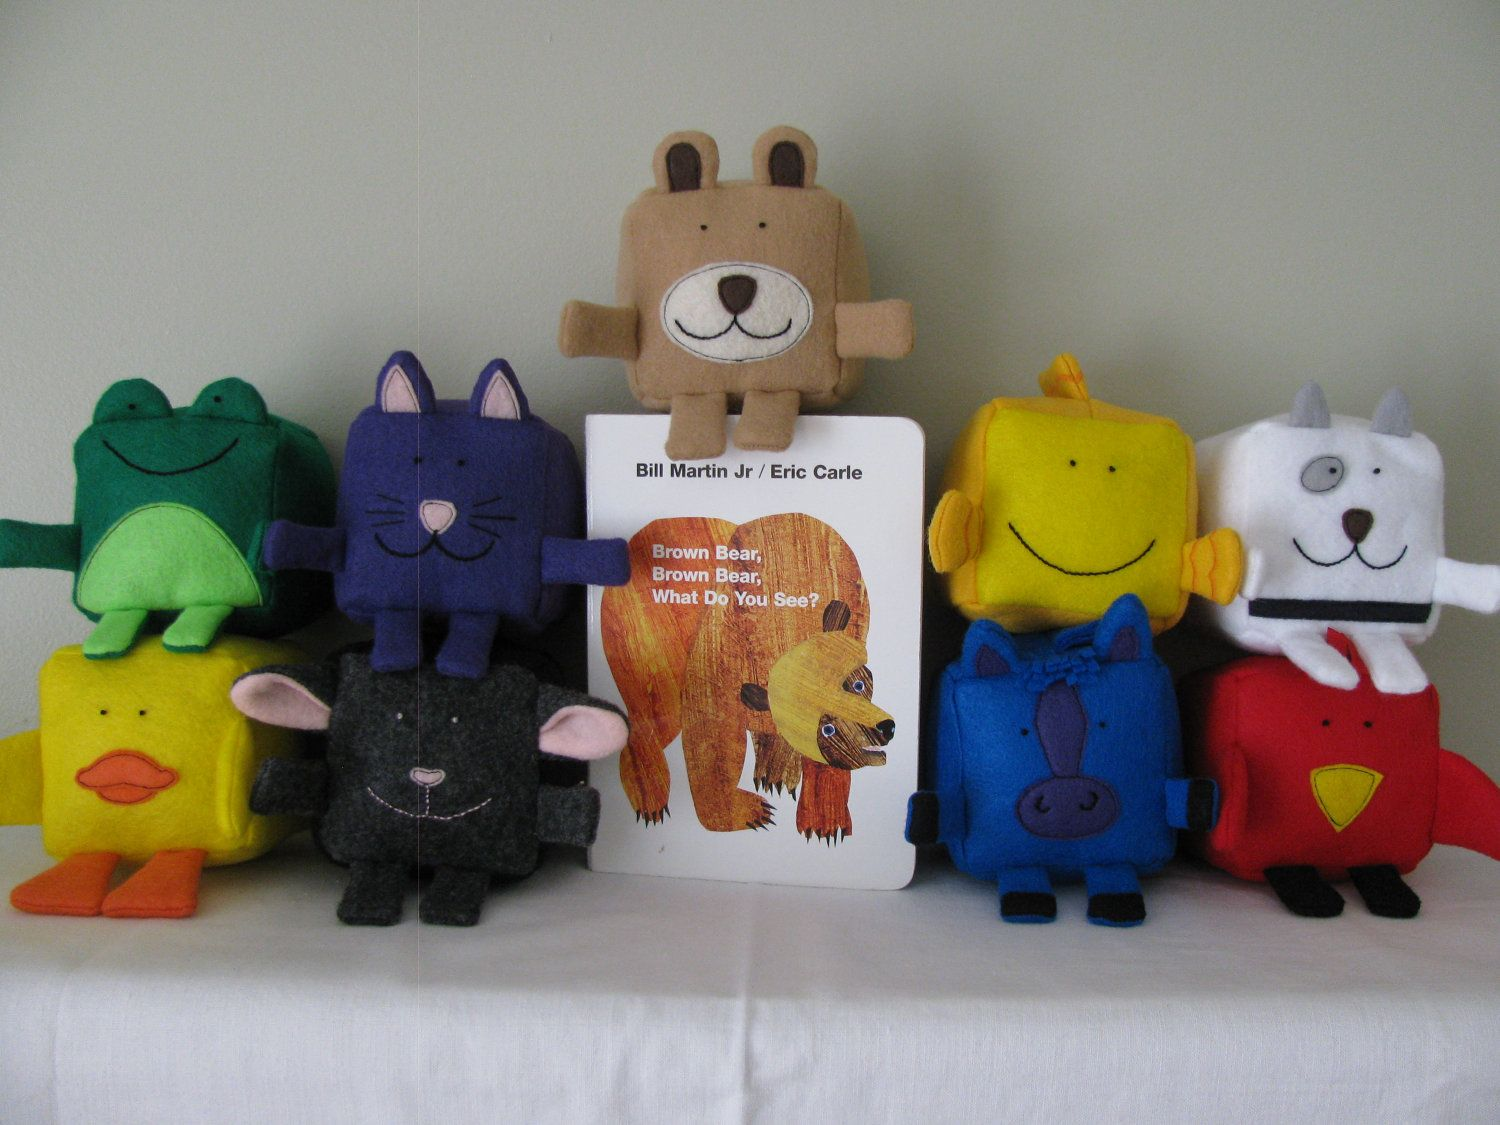 Eric carle inspired brown bear brown bear collection felt sew toys eric carle inspired brown bear brown bear collection felt cubesblocks plushie jeuxipadfo Images